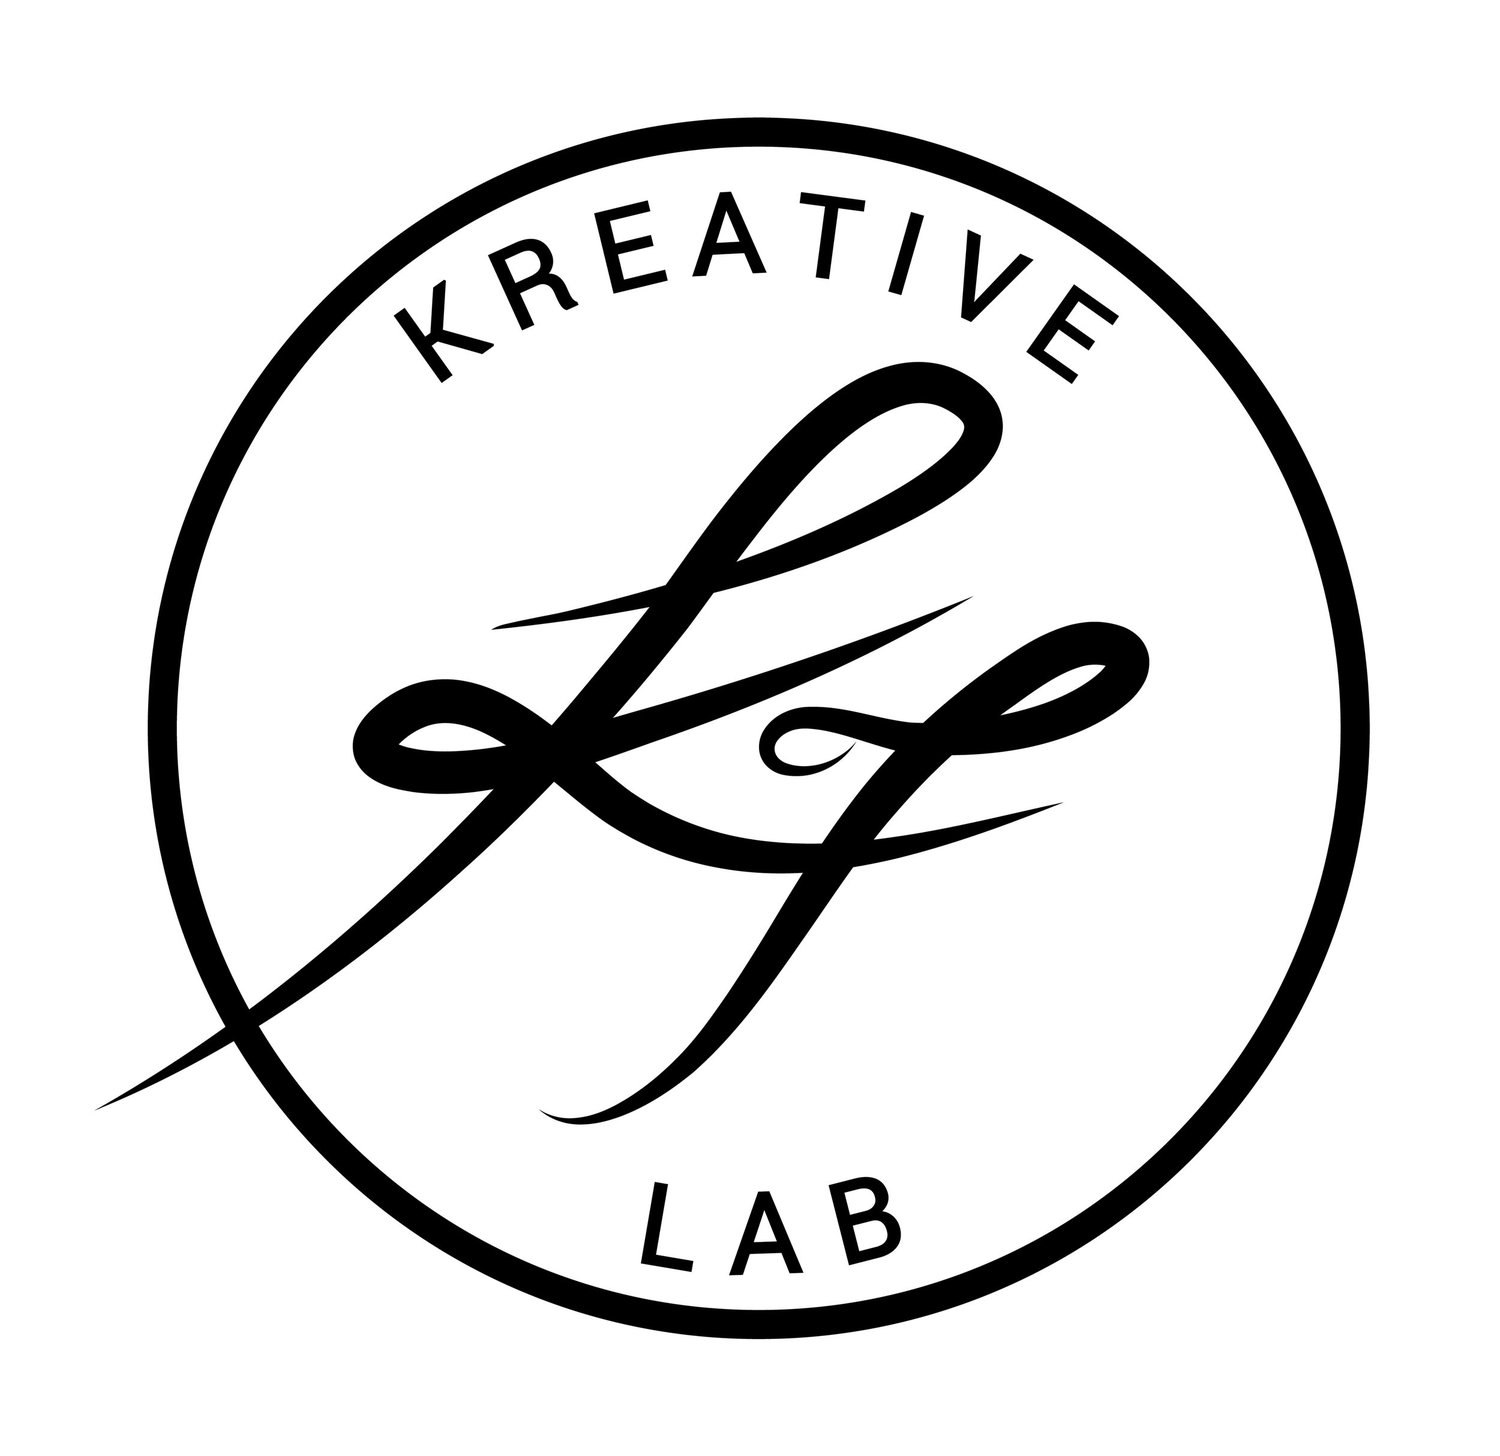 Graphic Design | Illustration | Surface & Textile Design : the Kreative lab